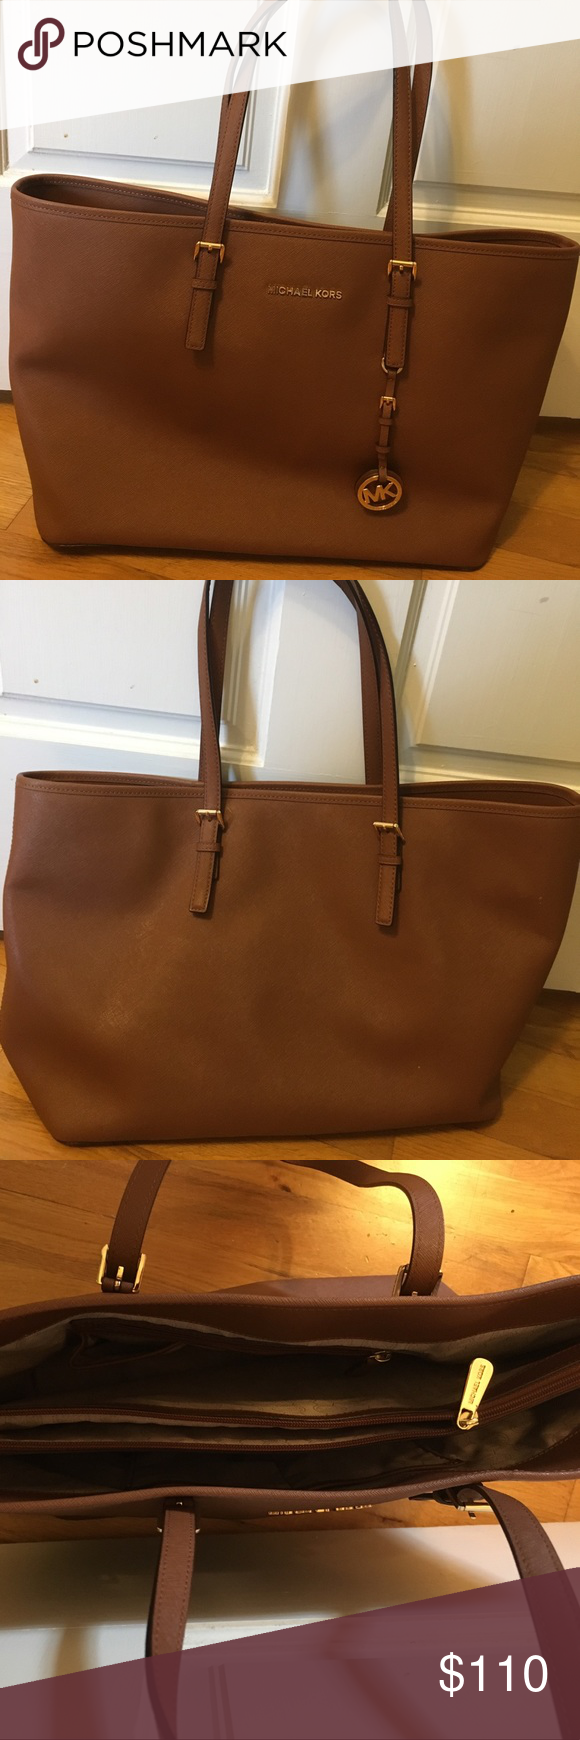 Michael Kors Jet Set Travel Large Saffiano Leather Excellent Condition Rarely Used Bags